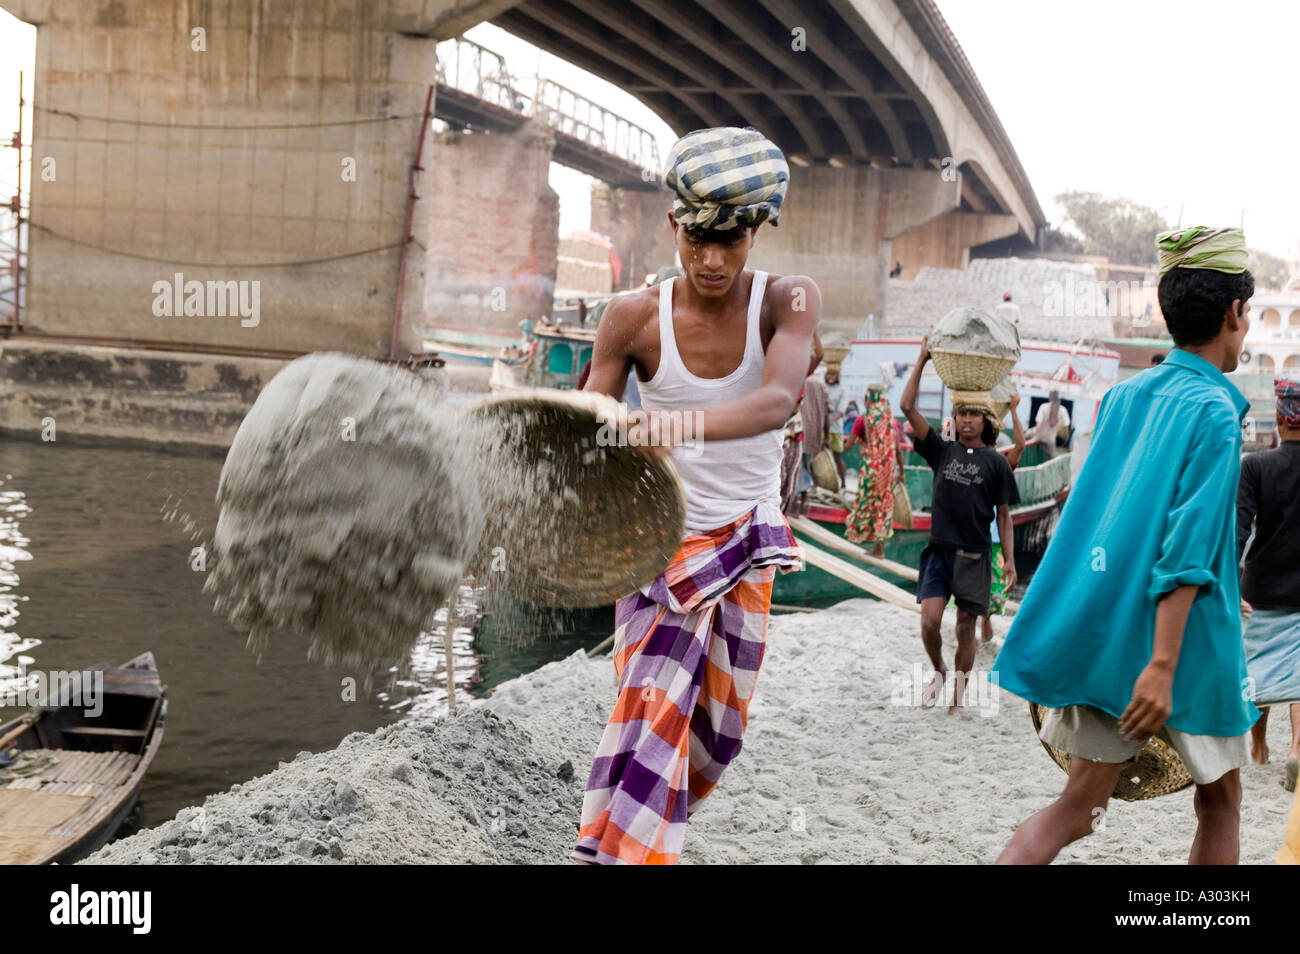 A man dumping out sand he carried from a boat to a pile on land to be sold Bangladesh - Stock Image